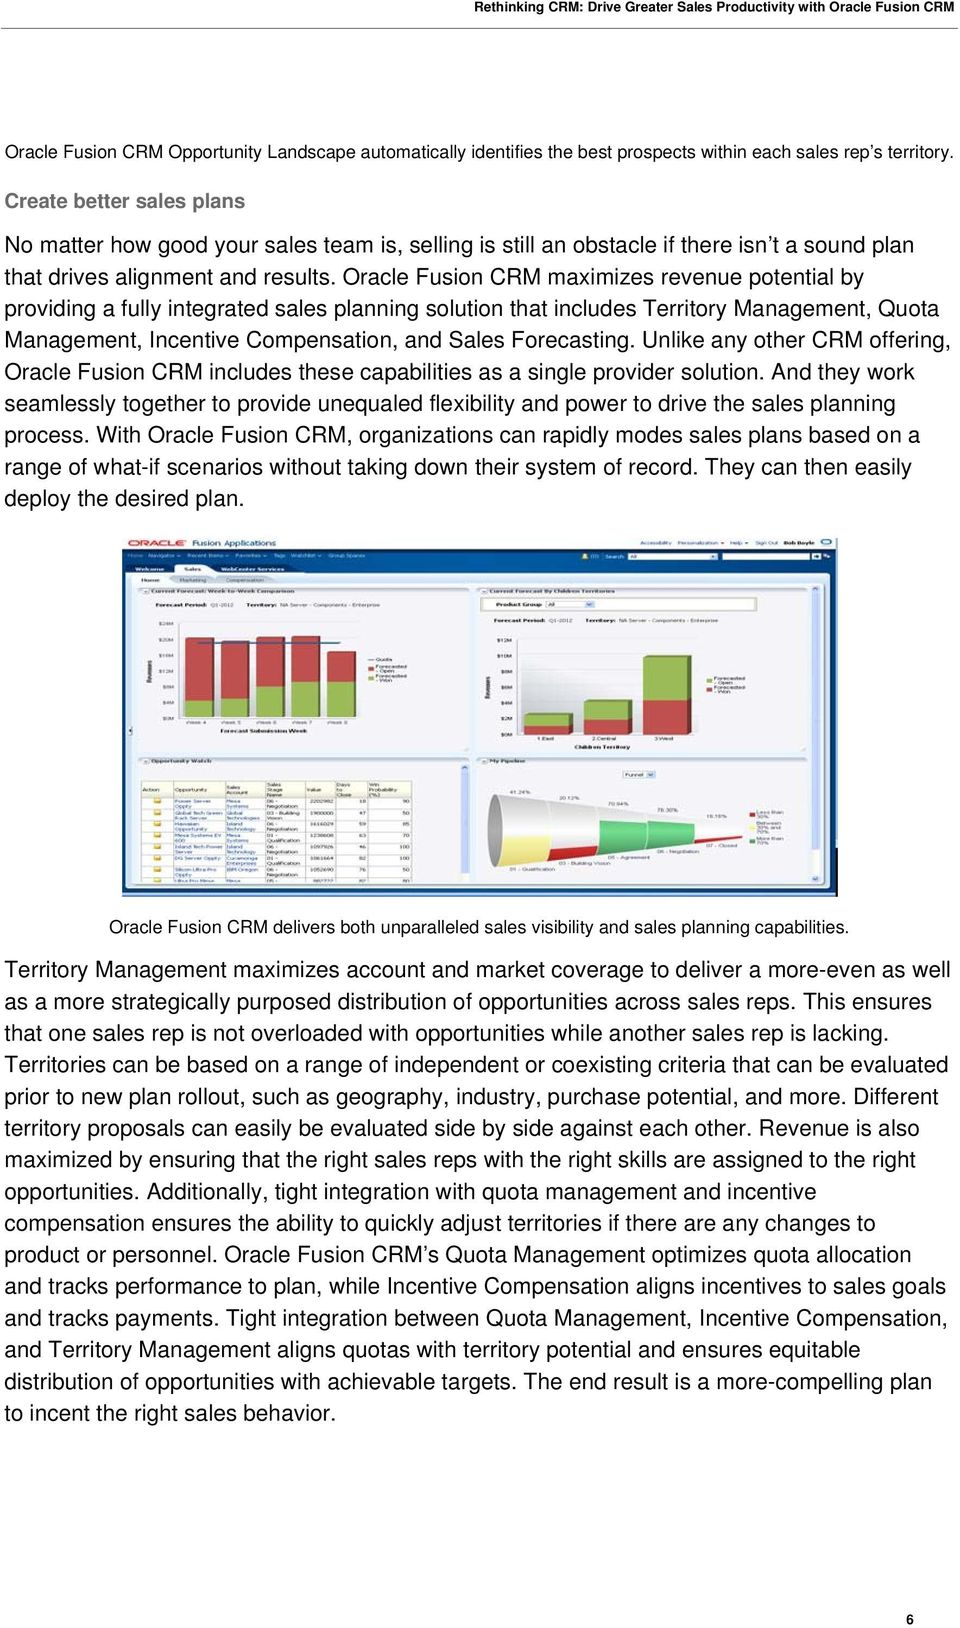 Oracle Fusion CRM maximizes revenue potential by providing a fully integrated sales planning solution that includes Territory Management, Quota Management, Incentive Compensation, and Sales